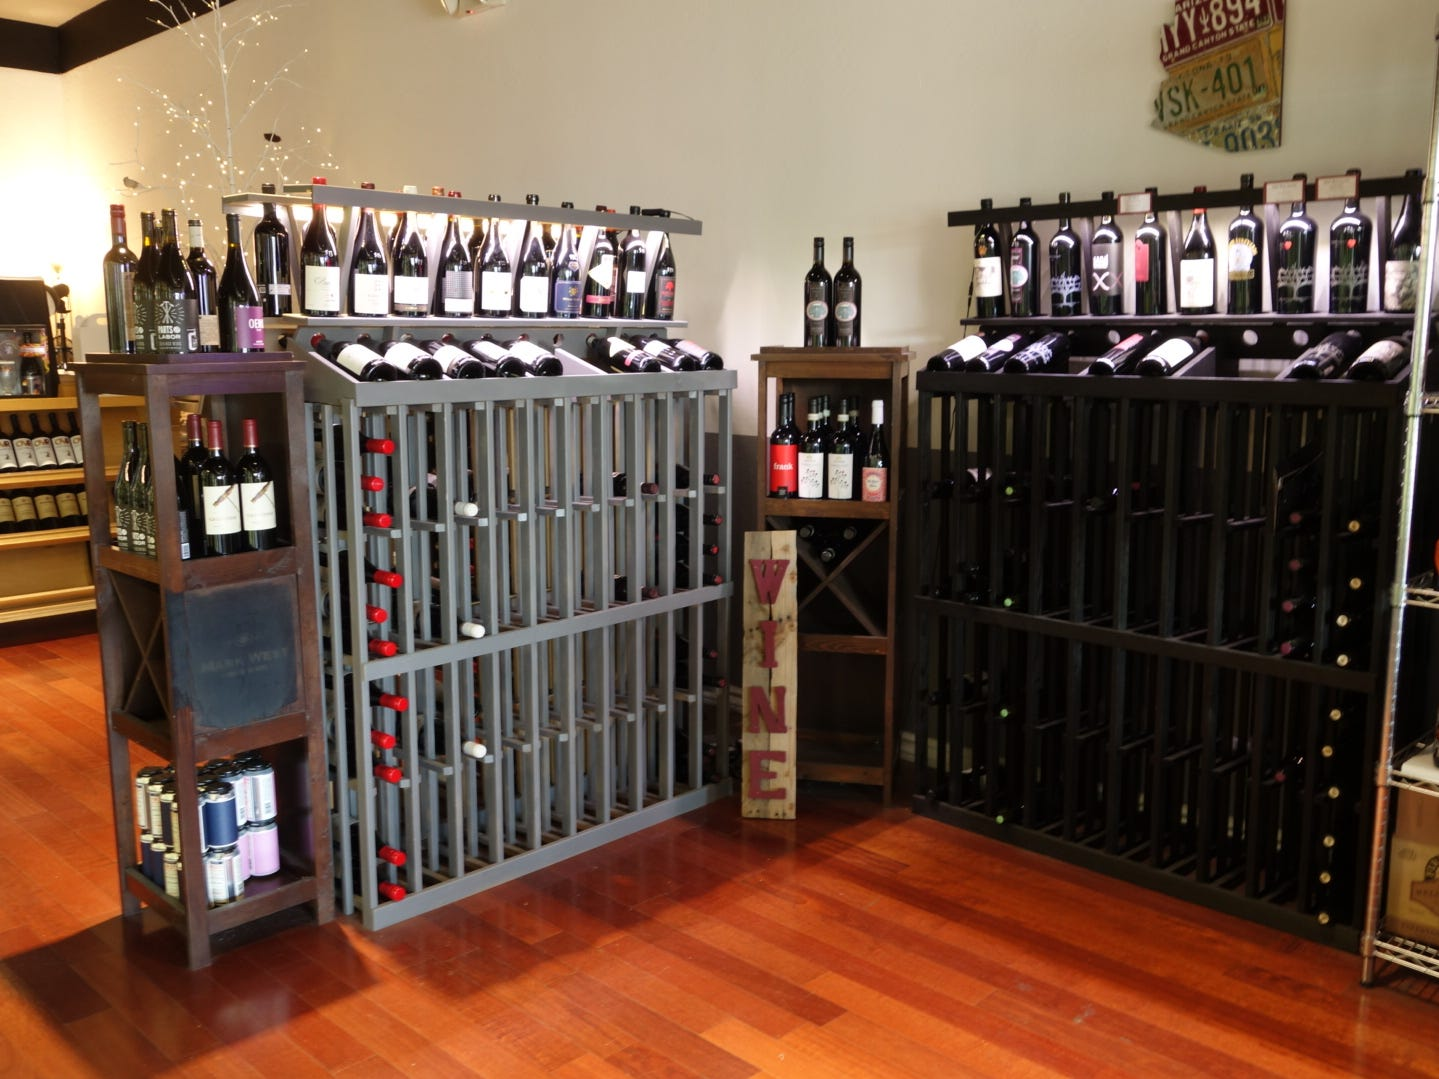 Arcadia Premium not only offers a selection of wine, but also local productions, cheese and more.